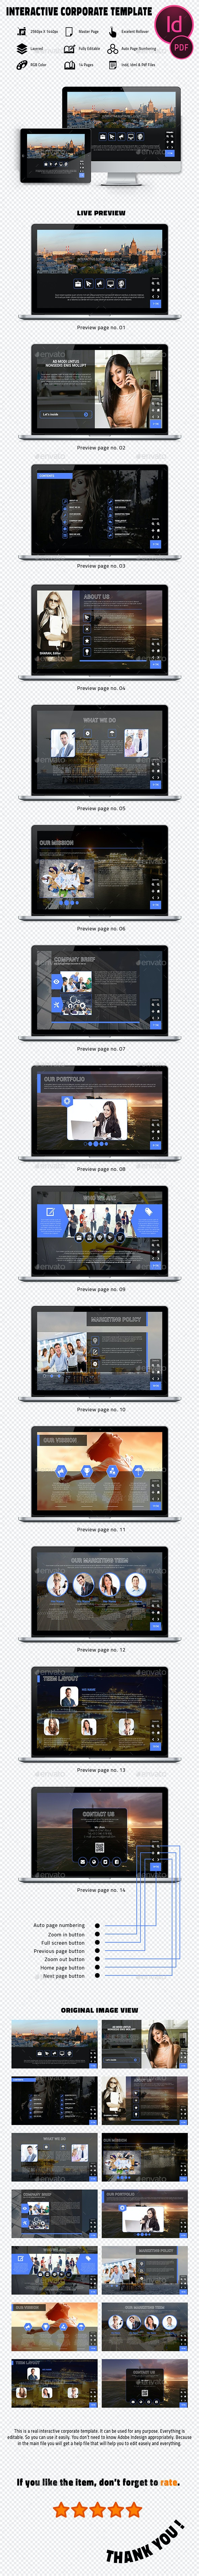 Interactive Corporate Template - Digital Magazines ePublishing